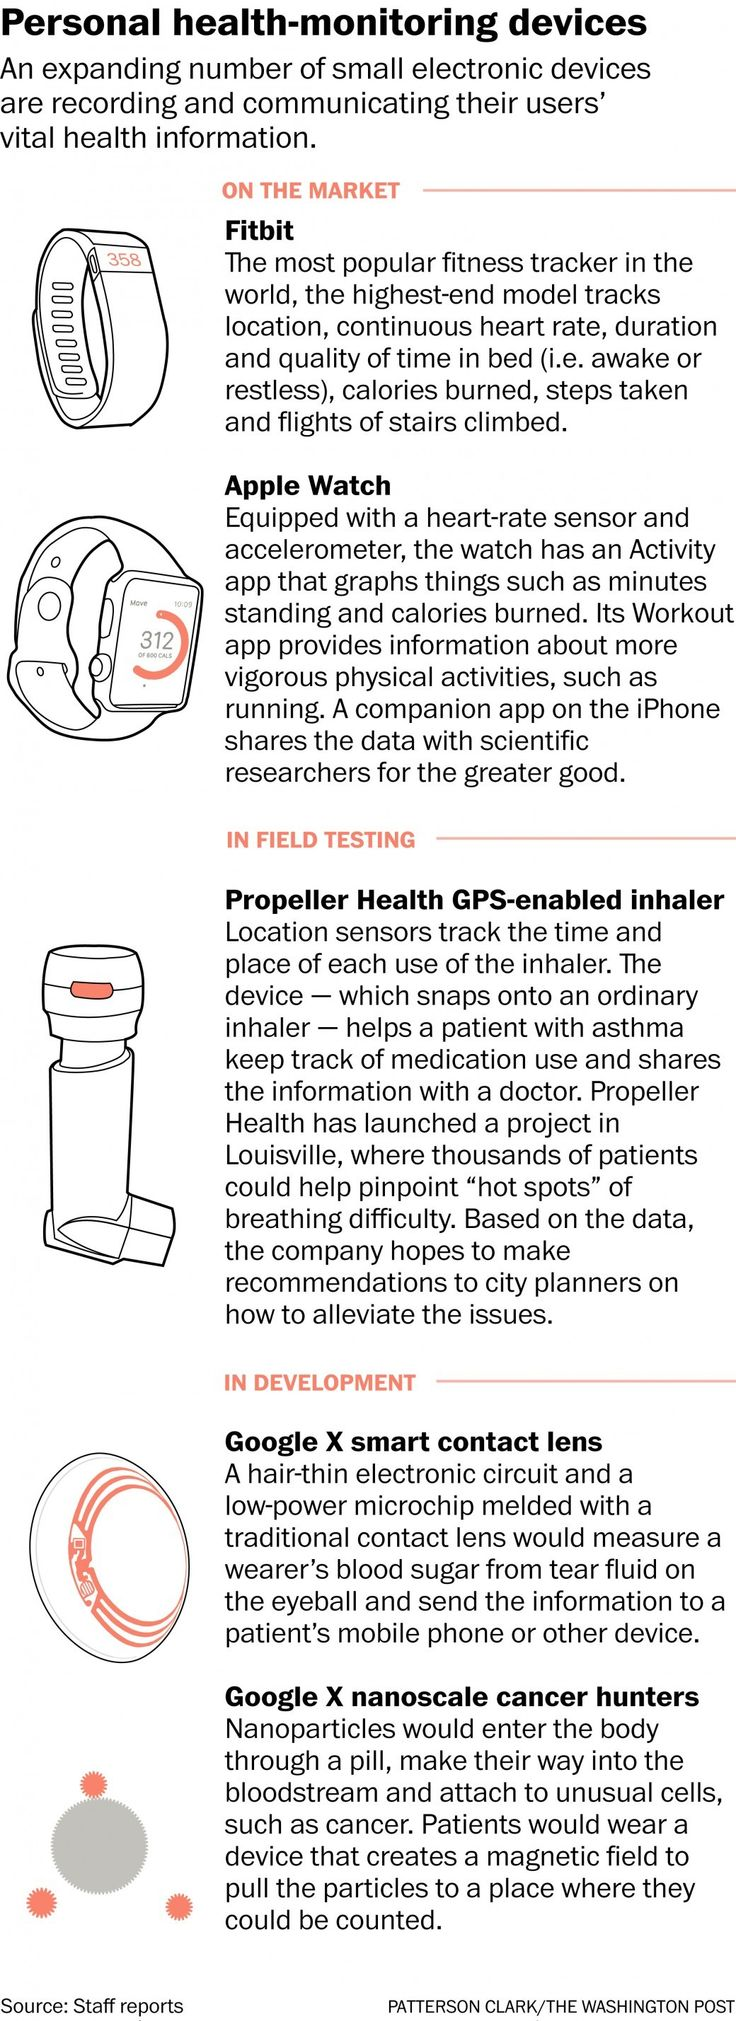 Spearheaded by the flood of wearable devices, a movement to quantify consumers' lifestyles is evolving into big business with immense health and privacy ramifications